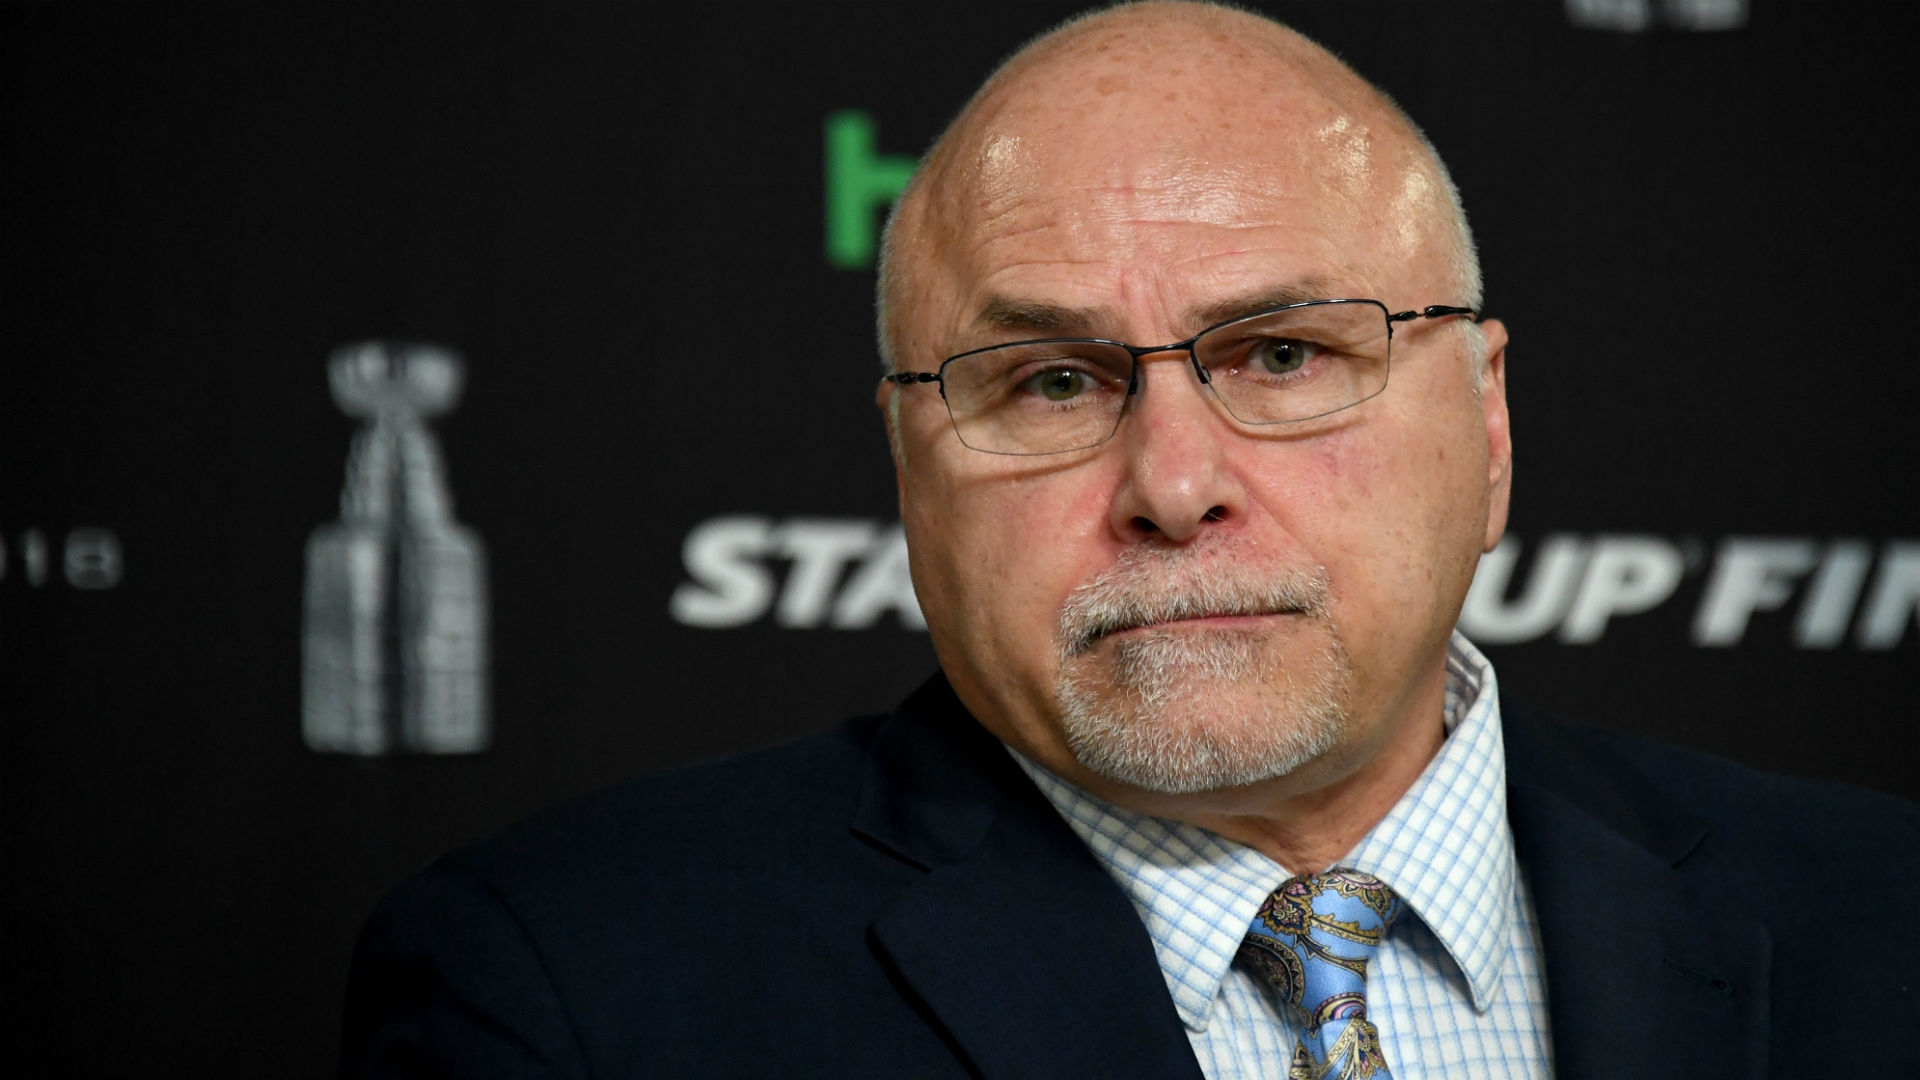 NHL playoffs 2019: Does Barry Trotz want to play and beat the Capitals? 'Absolutely, 100 percent'